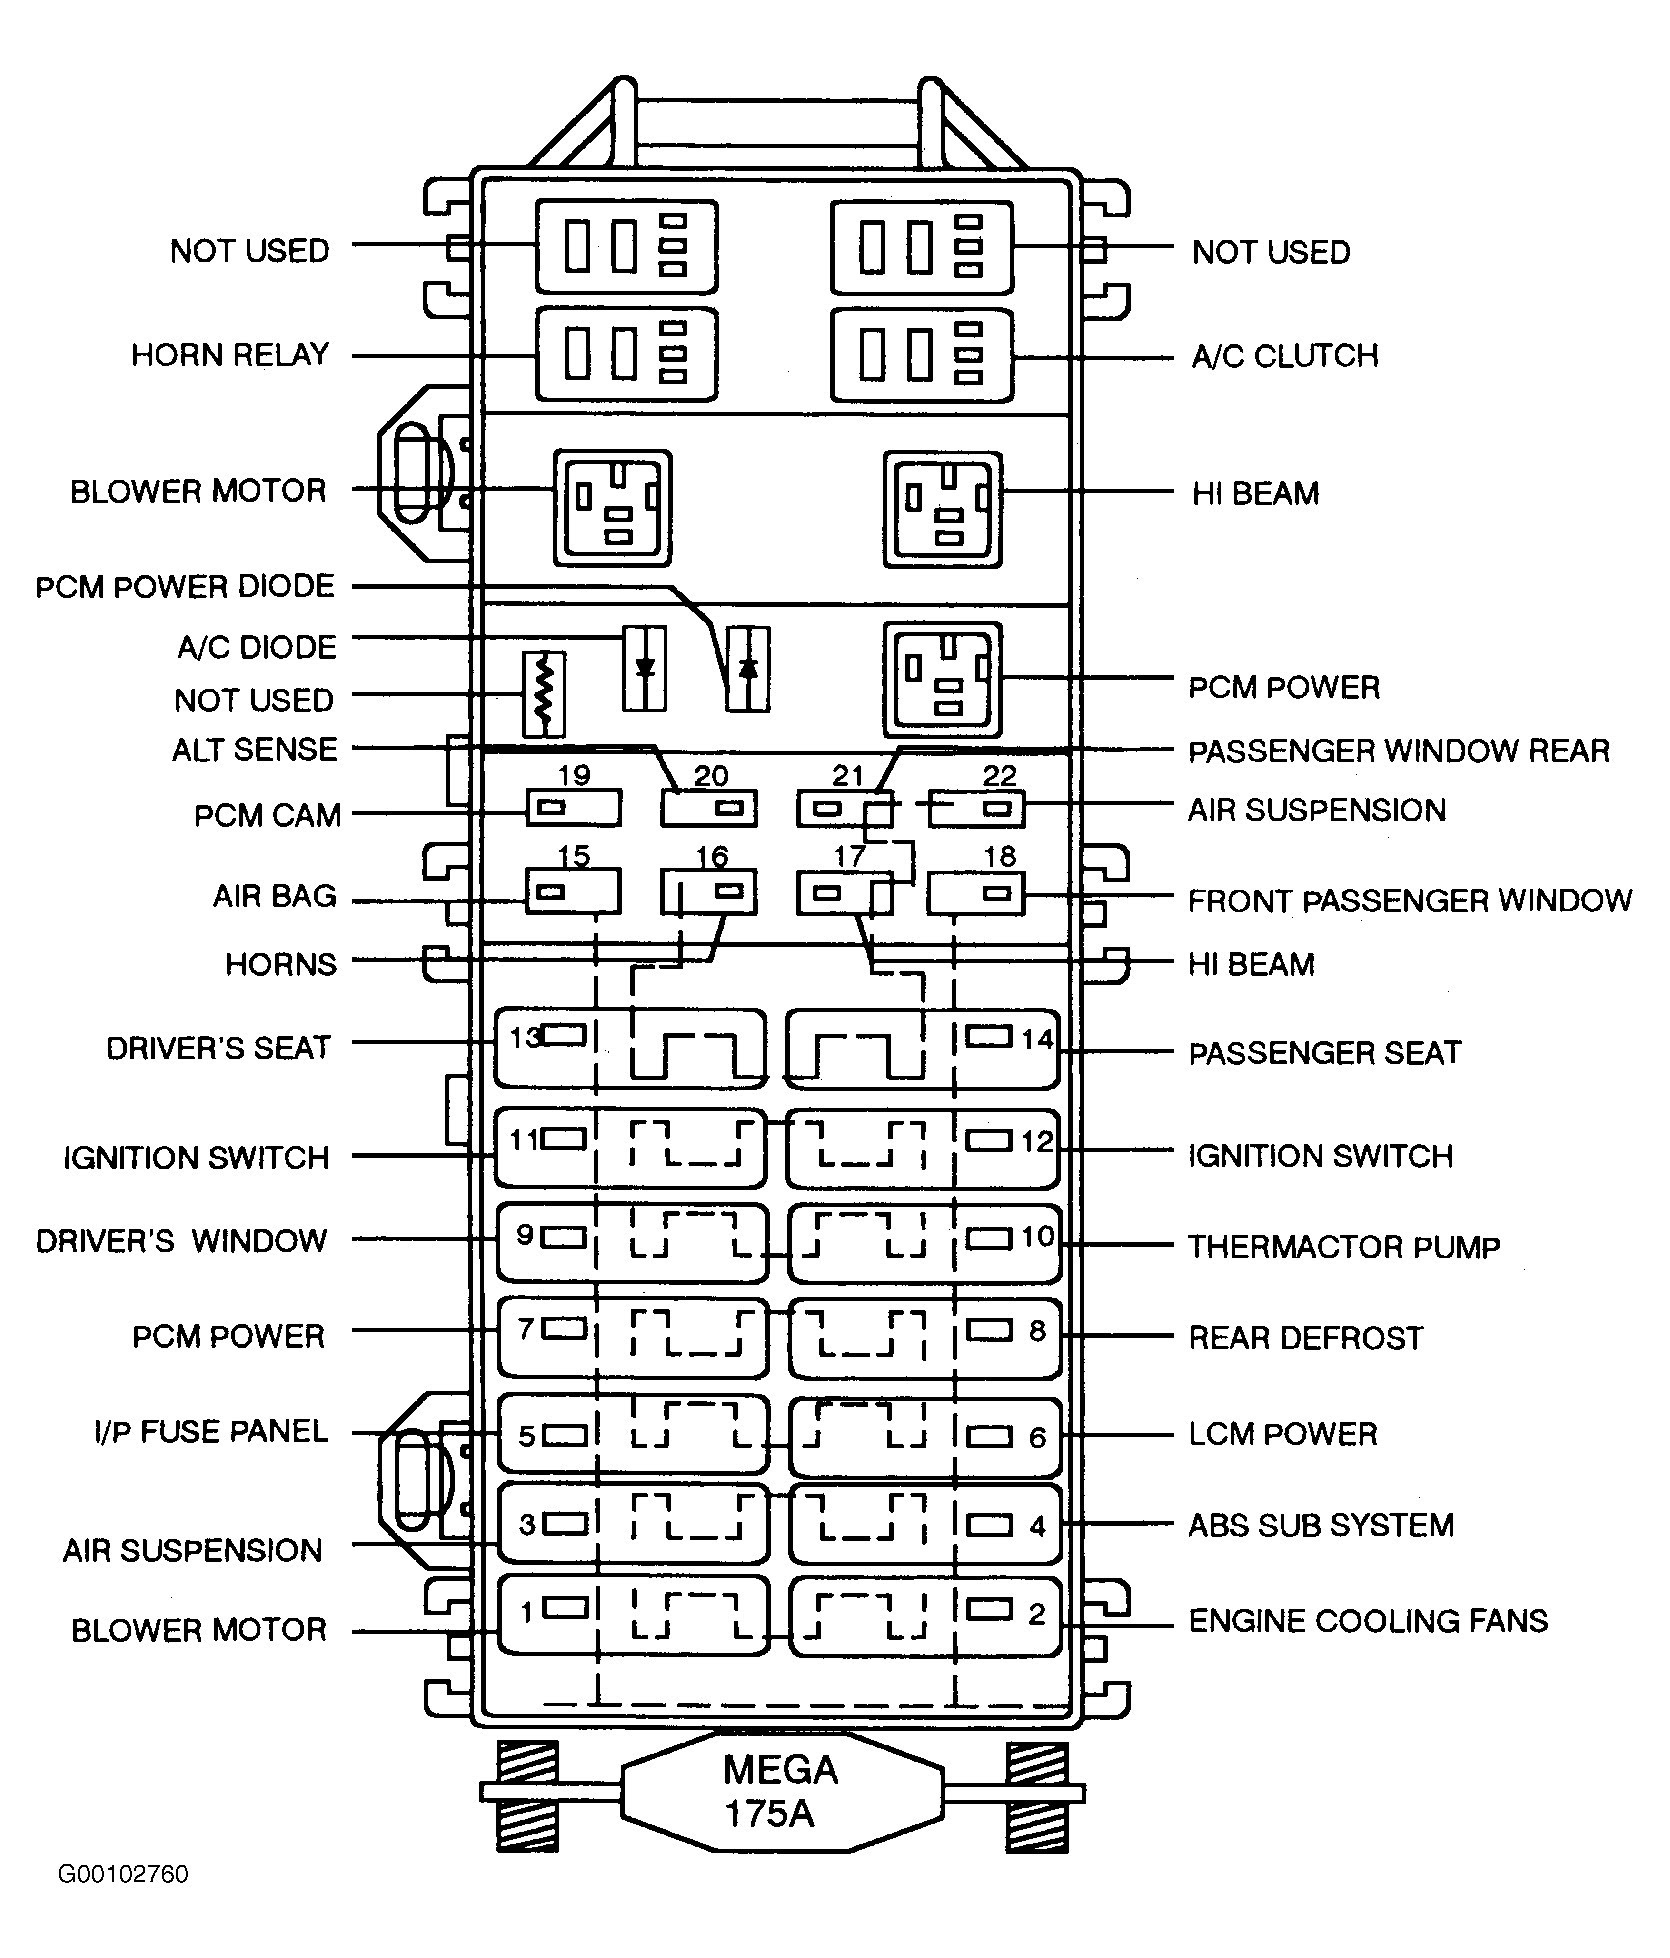 2008 Lincoln Town Car Fuse Box Whelen Smart Led 500 Wiring Diagram For Wiring Diagram Schematics